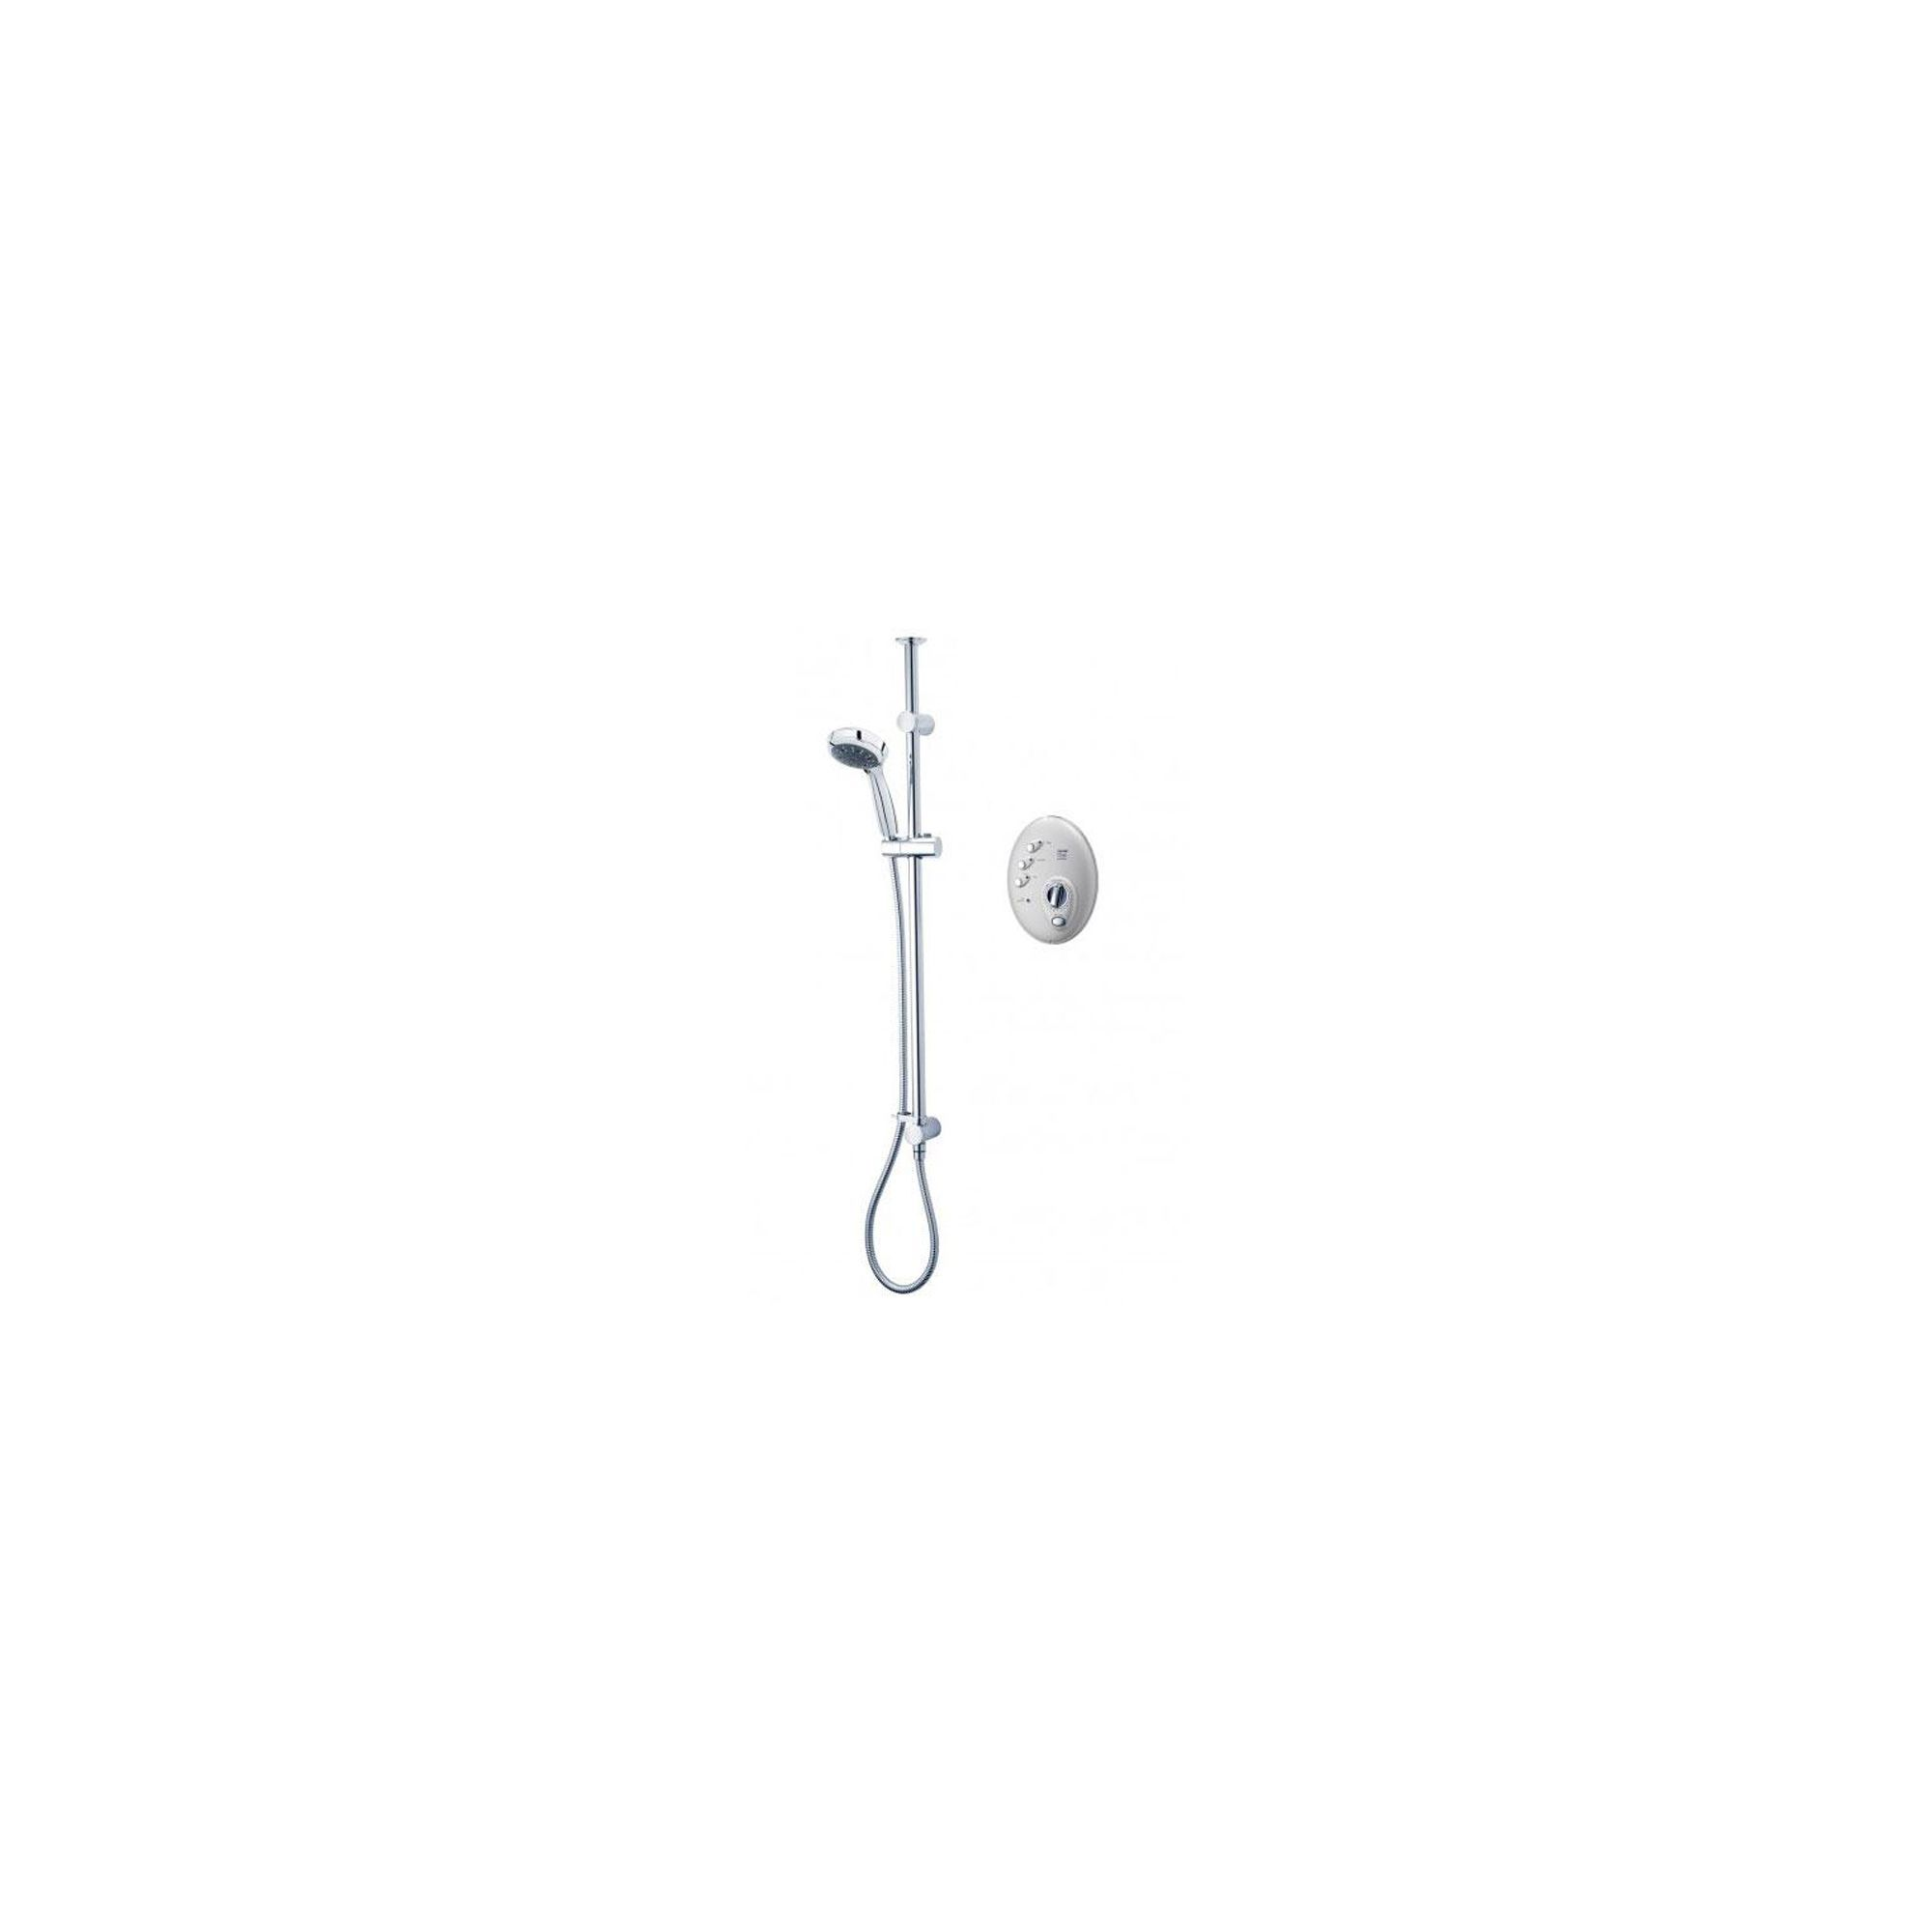 Triton T300si Digital Wireless Electric Shower Satin/Chrome 10.5 kW at Tesco Direct